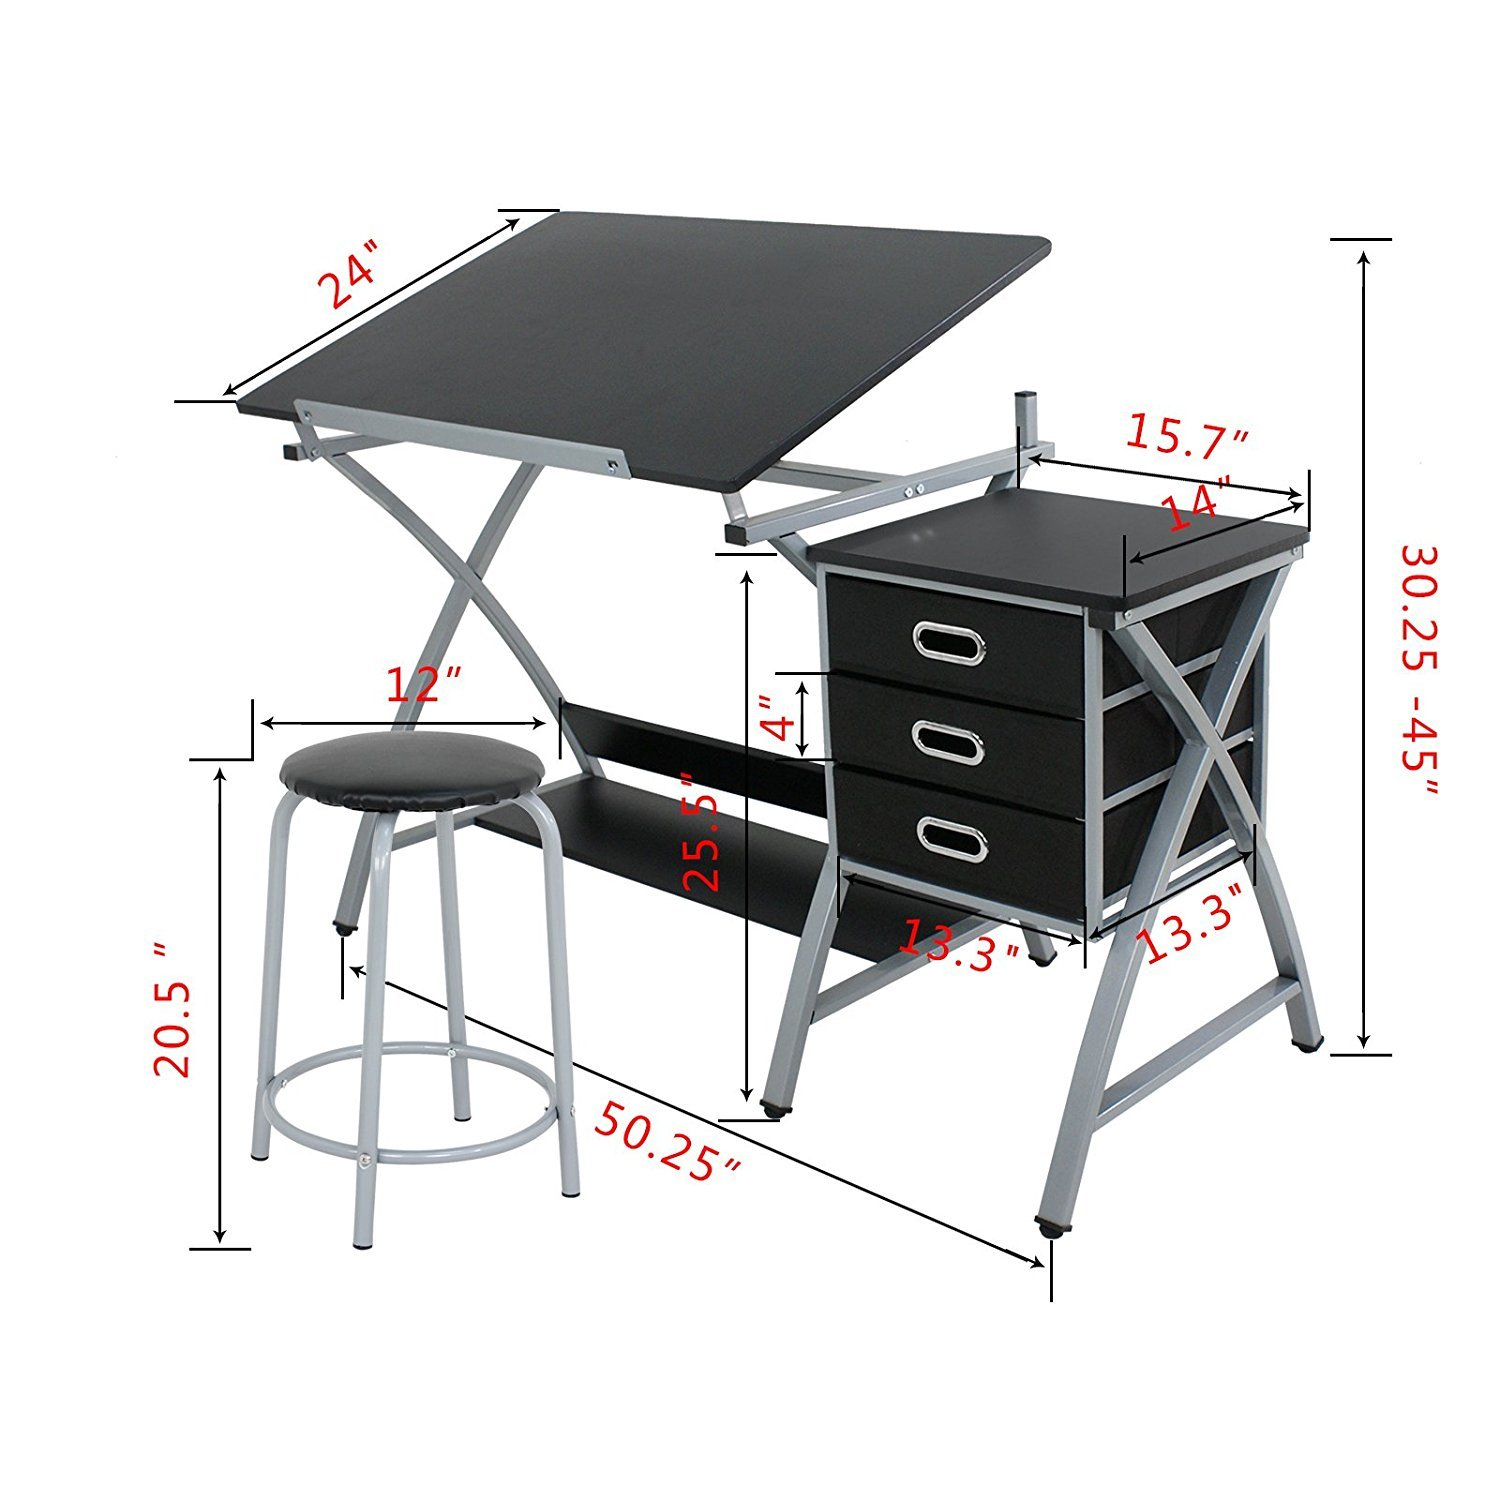 ZENY Tabletop Tilted Drawing Drafting Table Craft Drafting Desk Board Art Workstation w 2 Slide Drawers Stool,Tabletop Adjustable,Art Craft Supplies